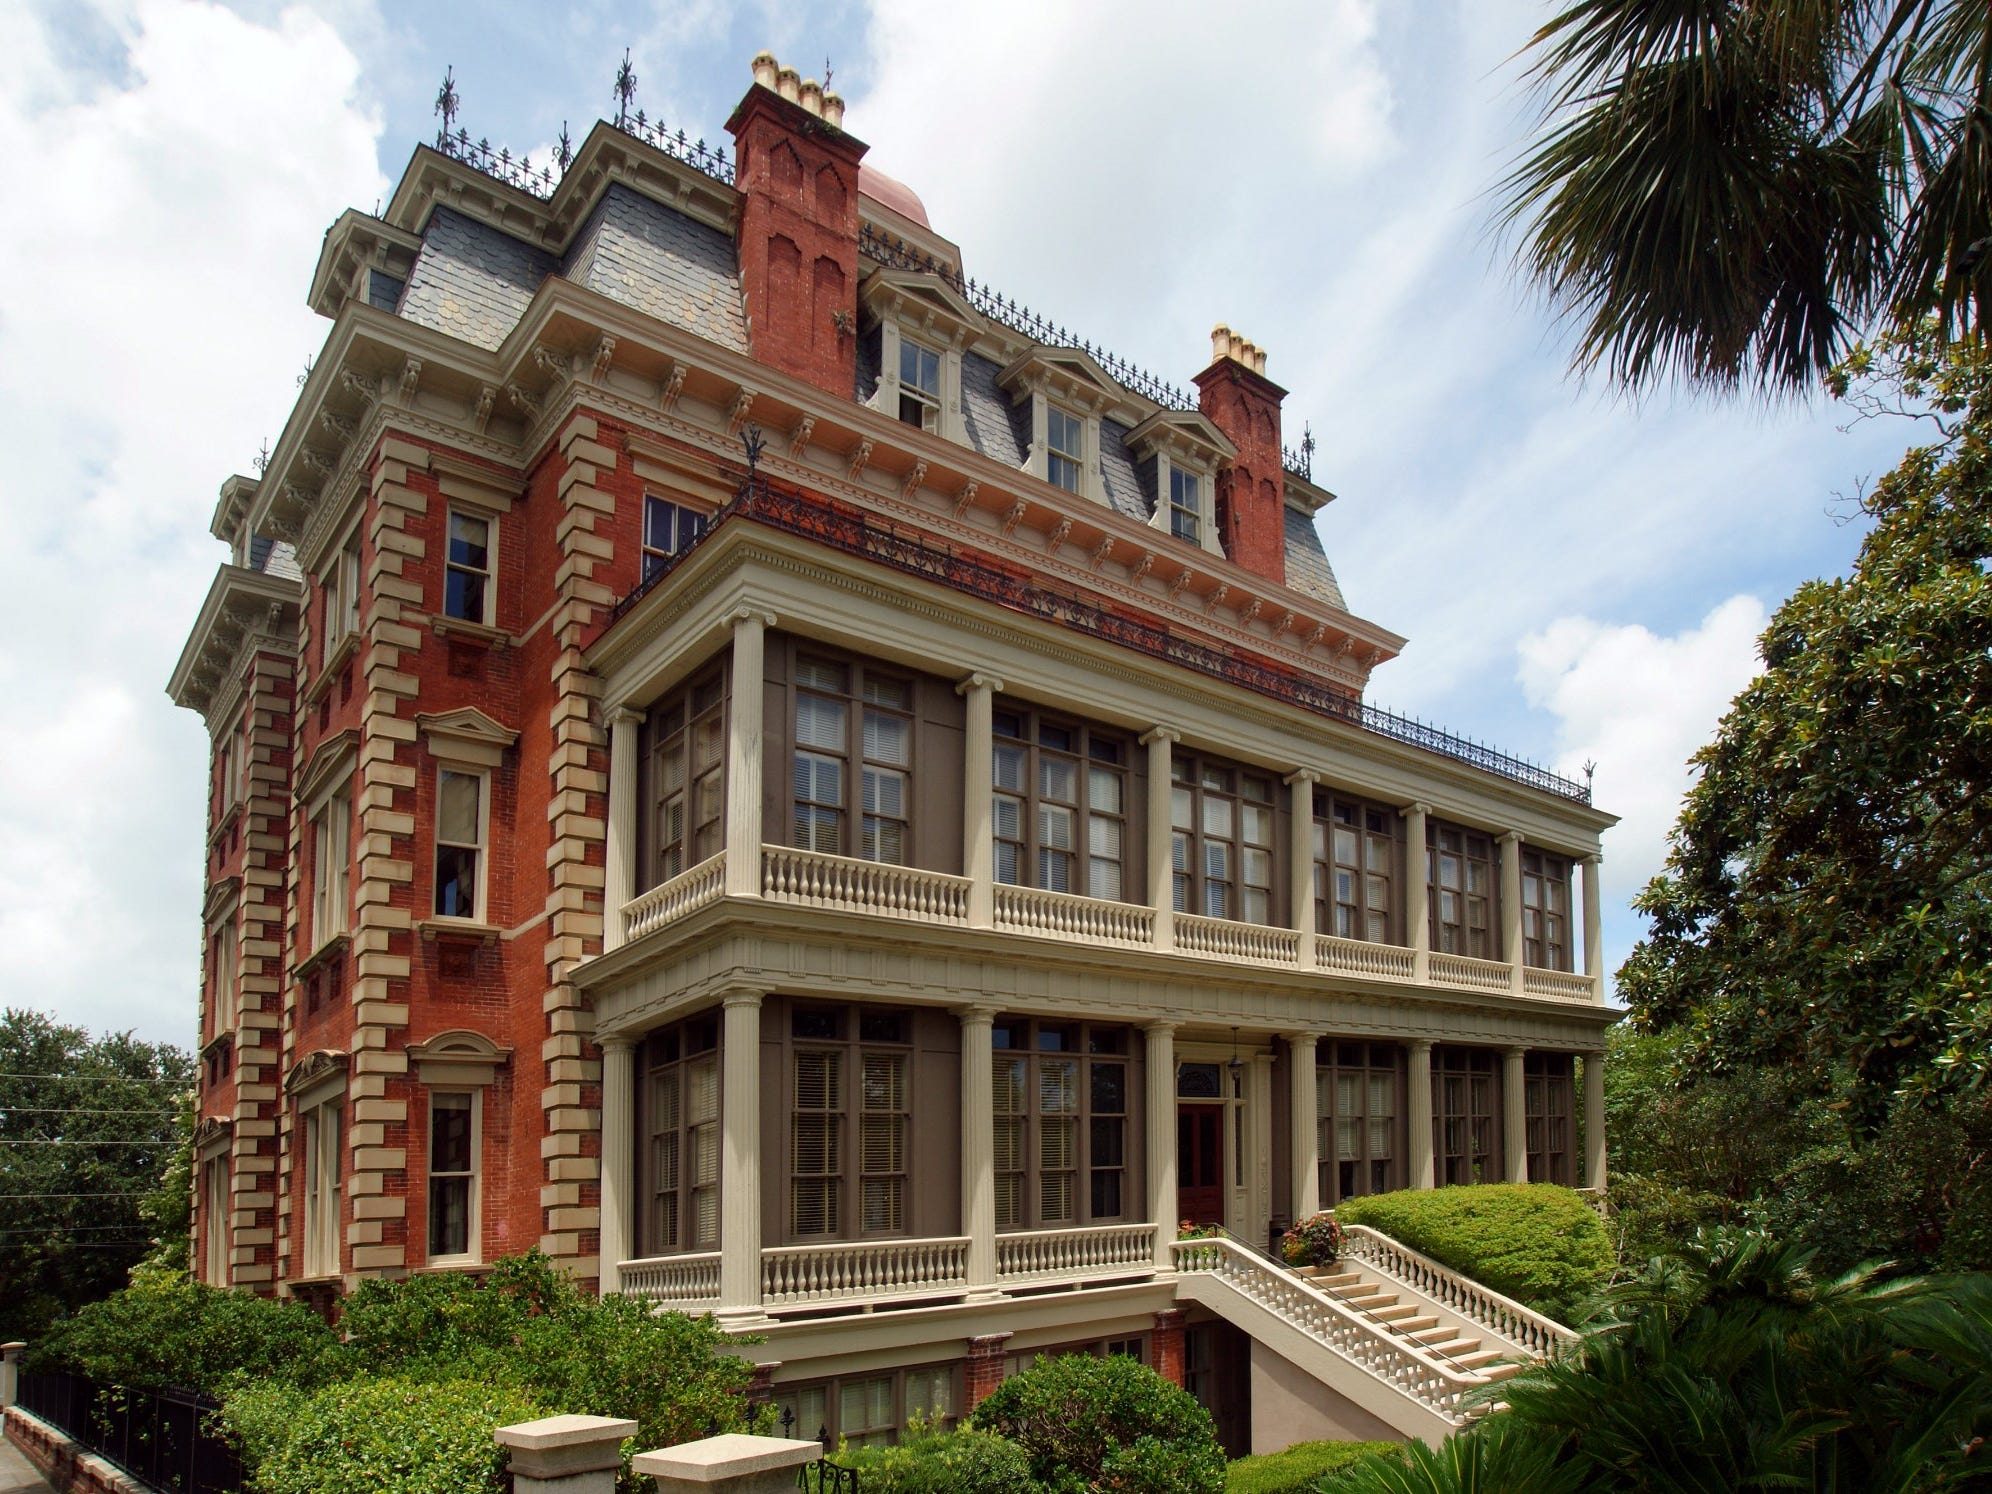 No. 25: Wentworth Mansion in Charleston, South Carolina.